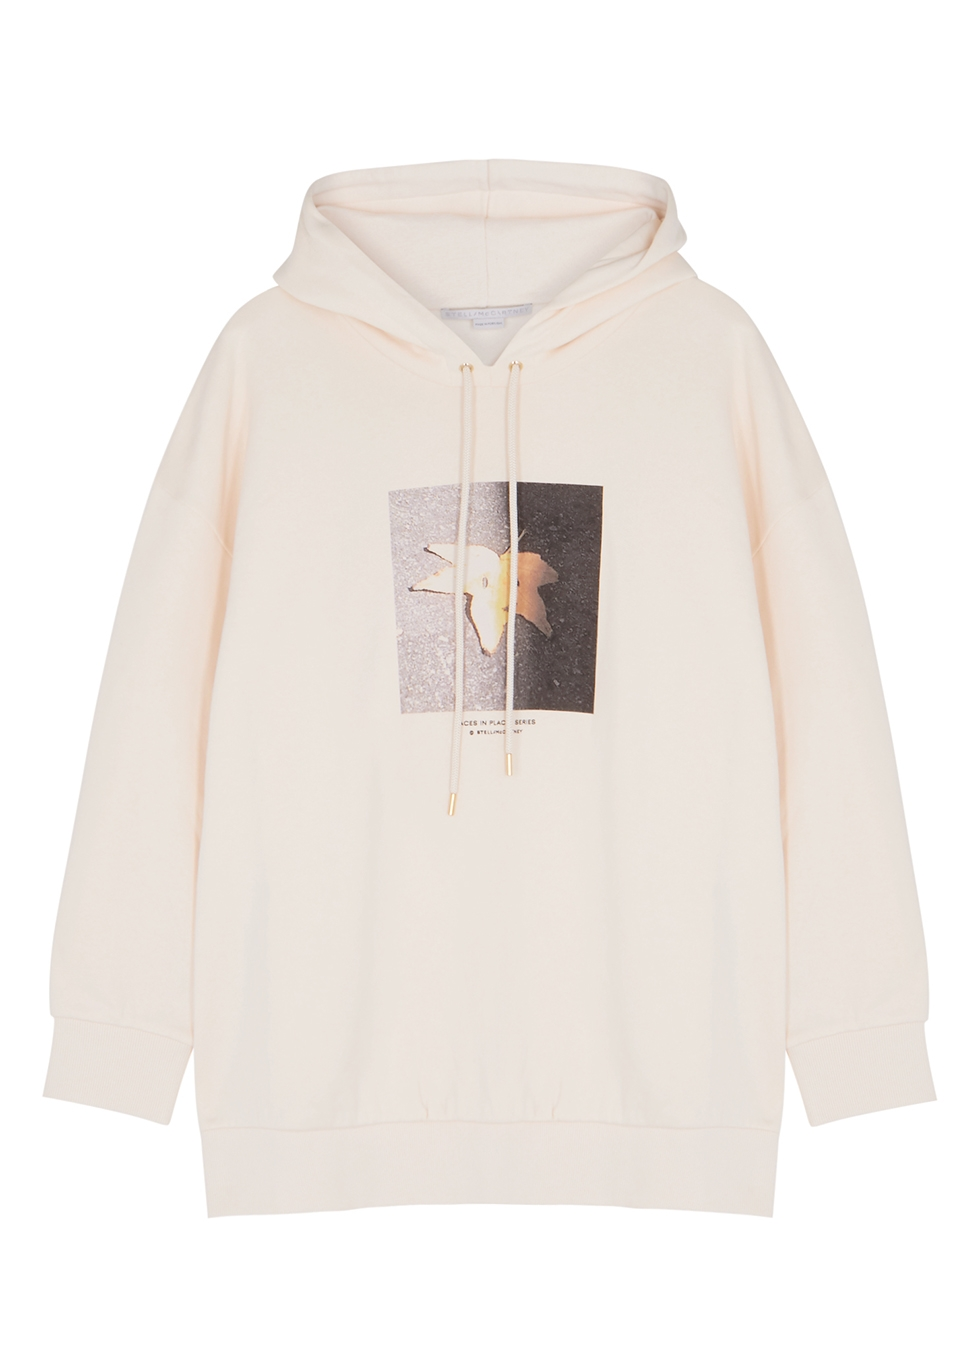 Faces In Places printed cotton sweatshirt